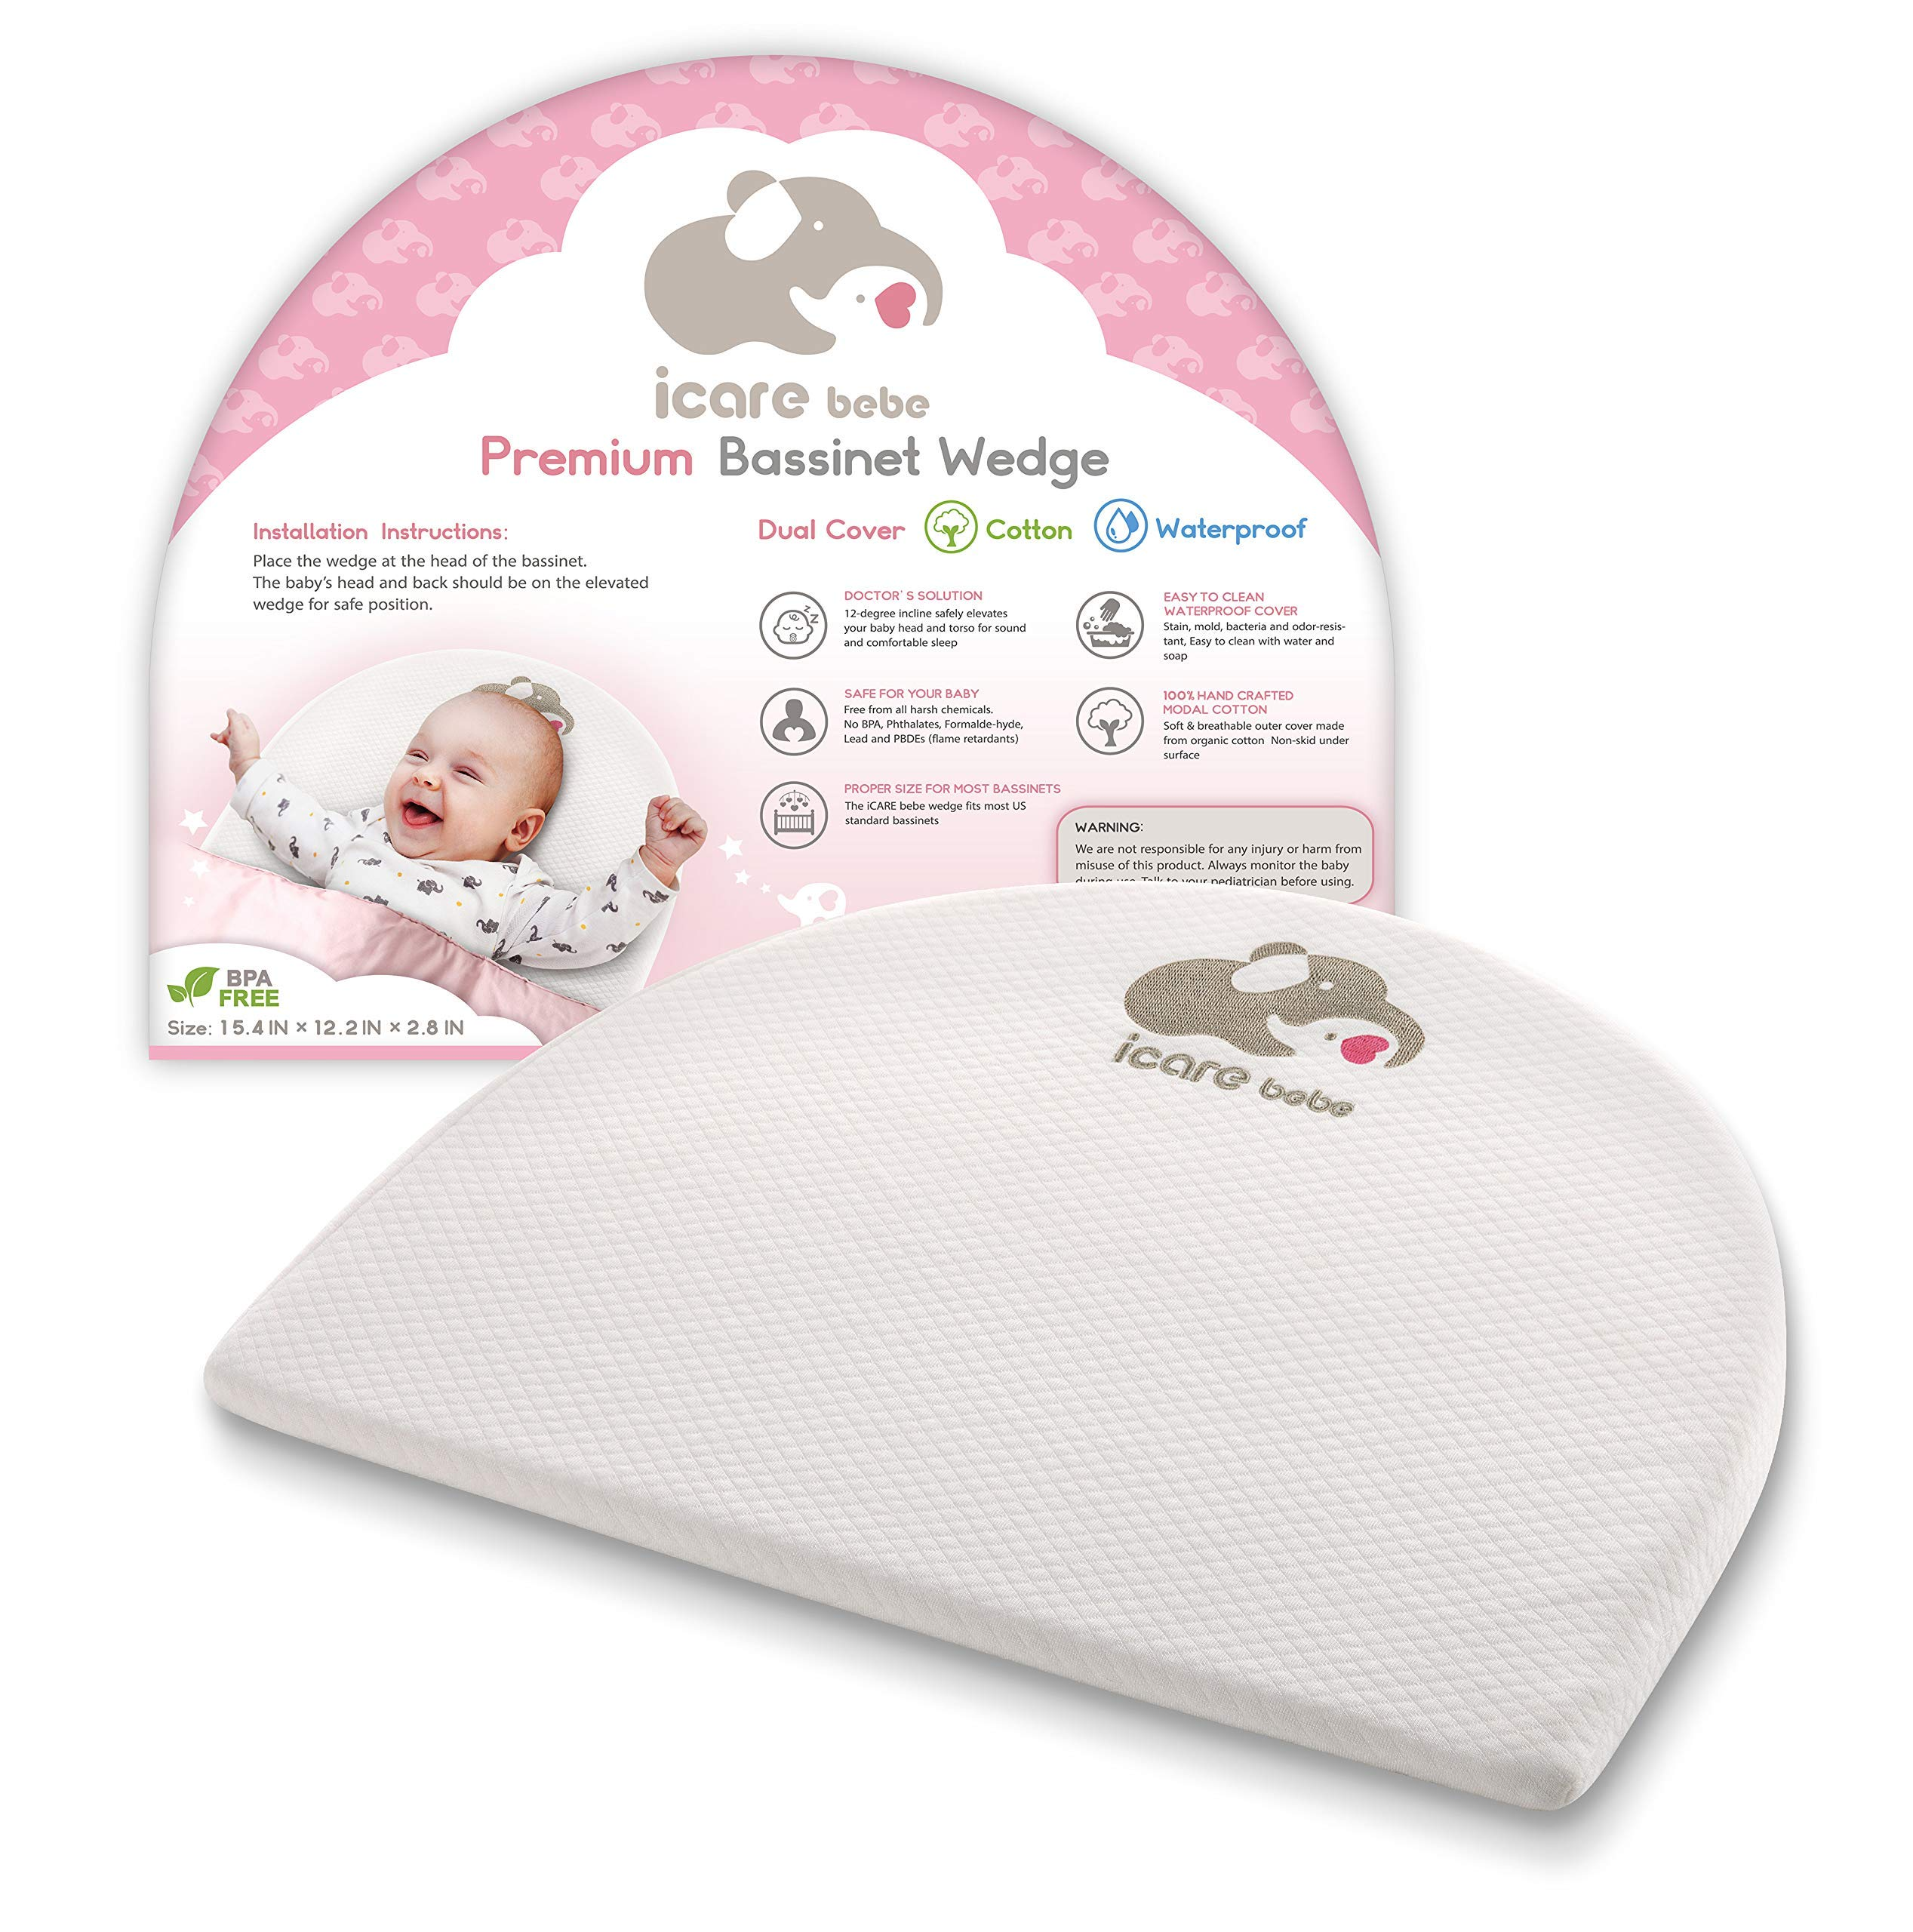 Bassinet Mattress Wedge - Baby Pillow for Acid Reflux - 12-Degree Inclined Baby Sleeper Wedge - Modal Cotton Breathable Fabric - Firm Foam Head Support for Infants - Removable Cover by iCARE bebe